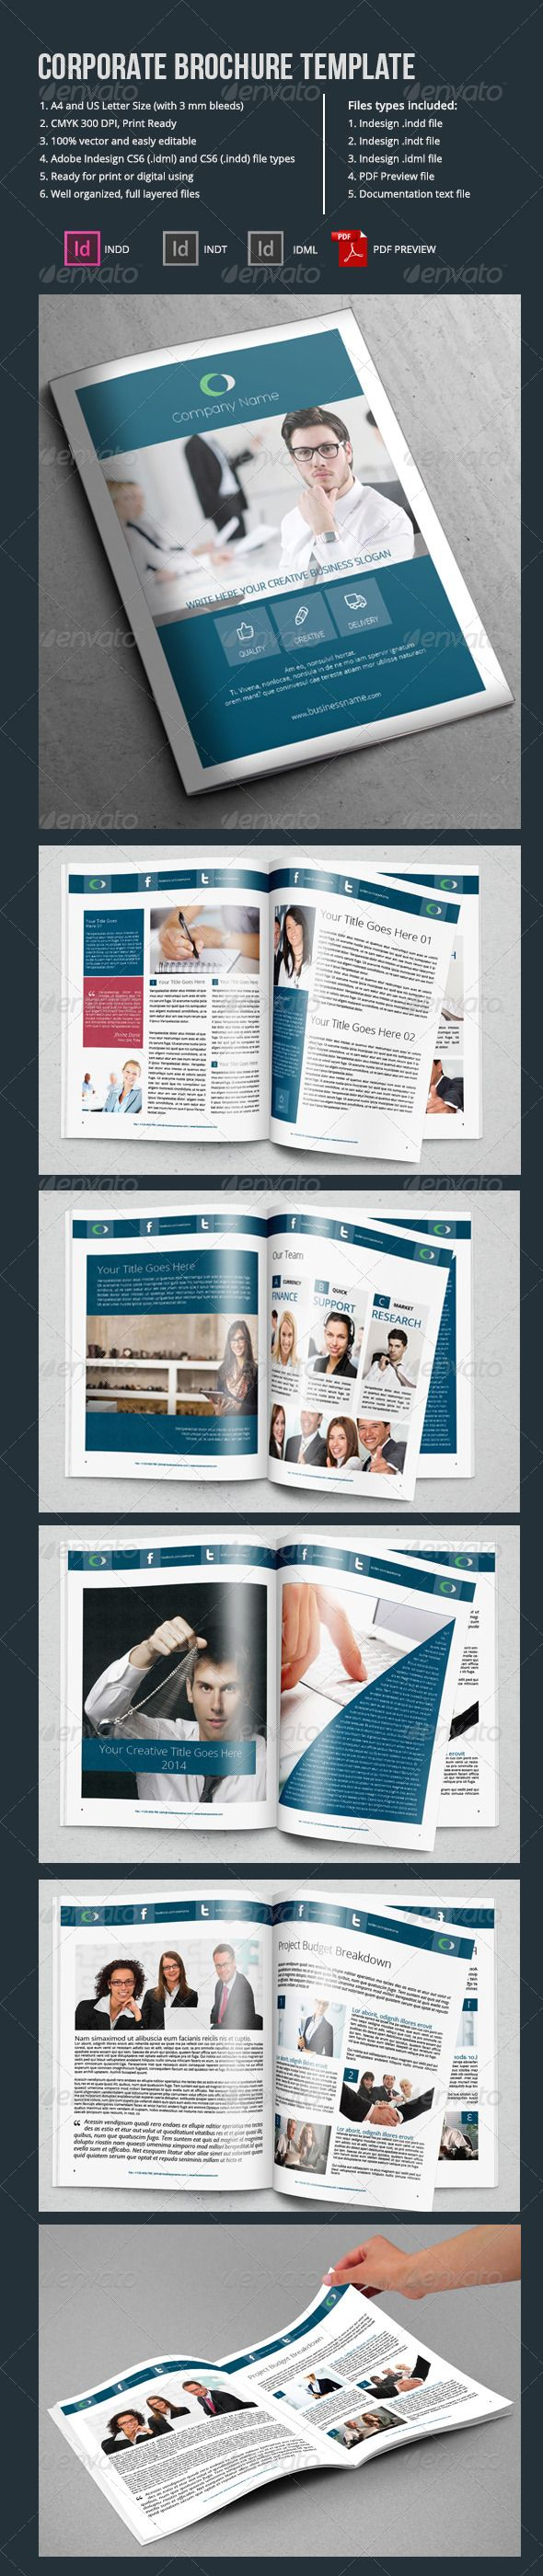 Corporate Brochure Template Pages   Advertisements Airline